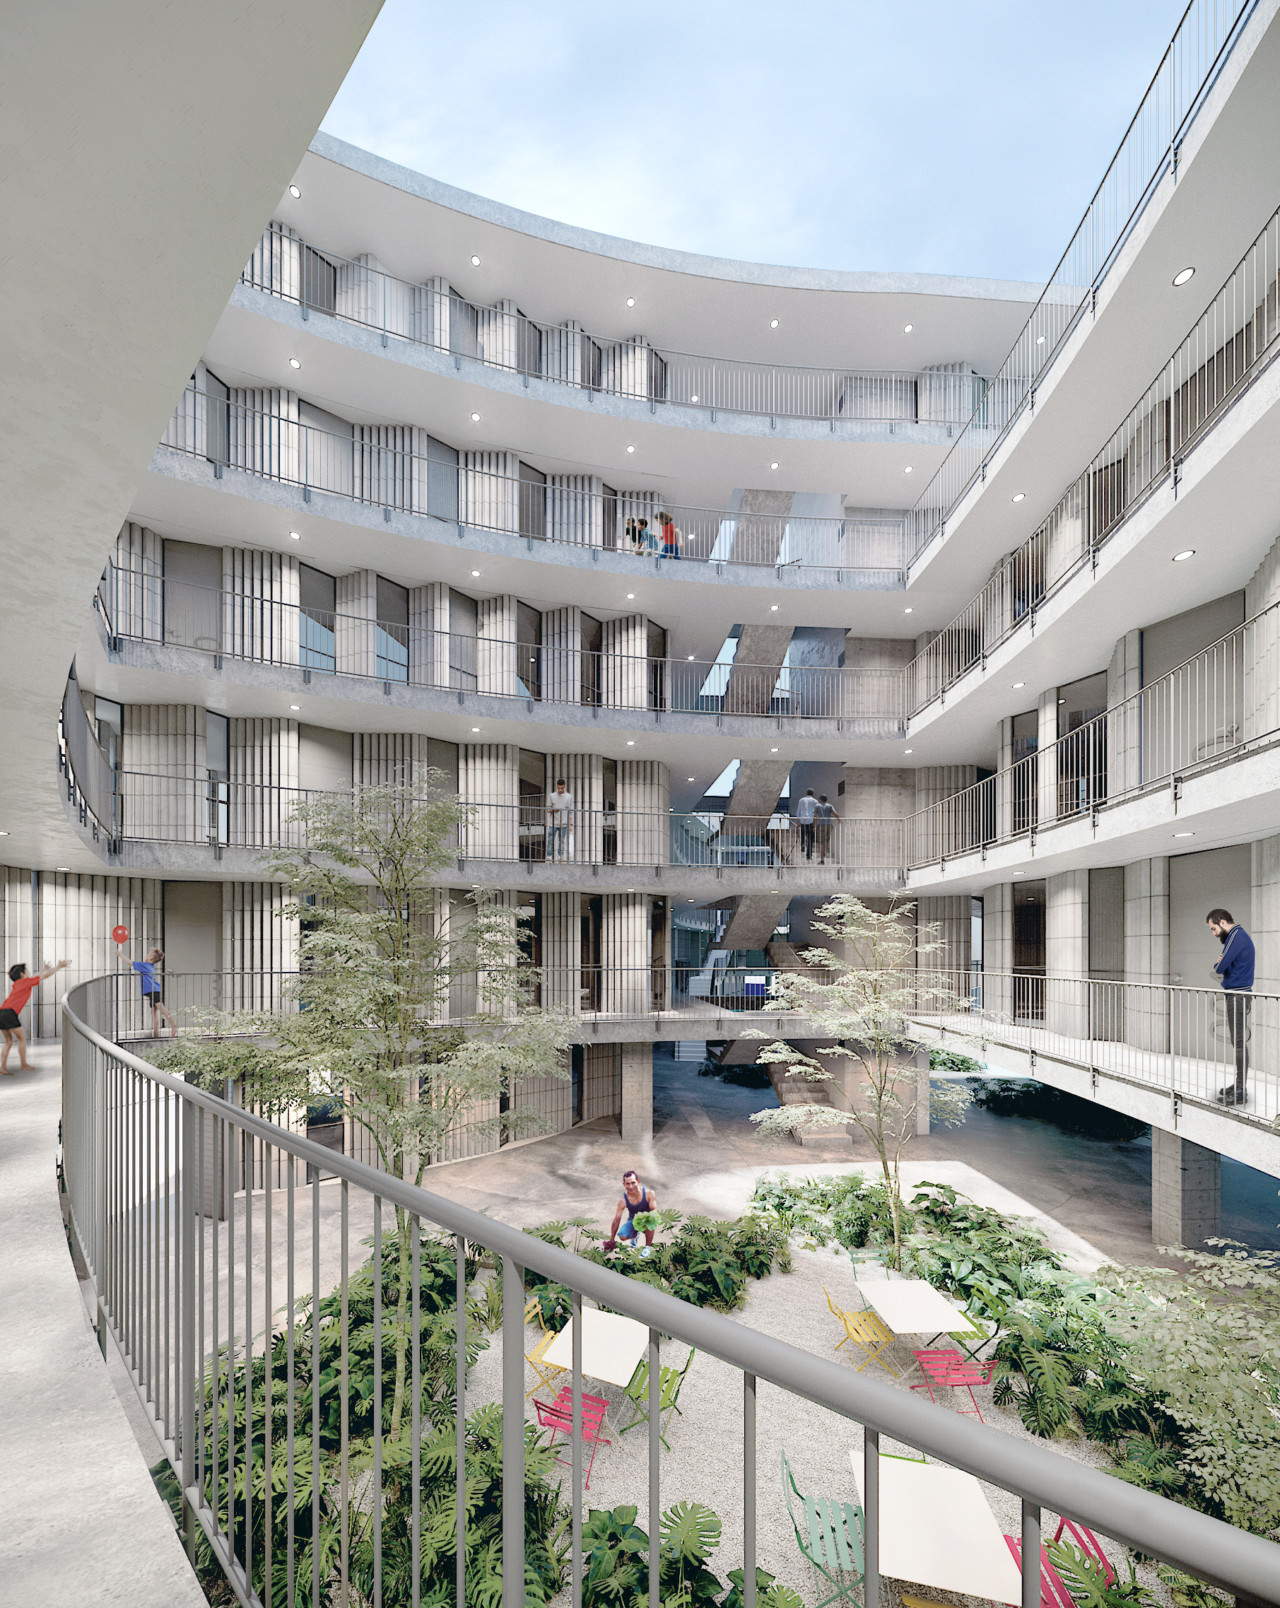 Interior of a tall courtyard